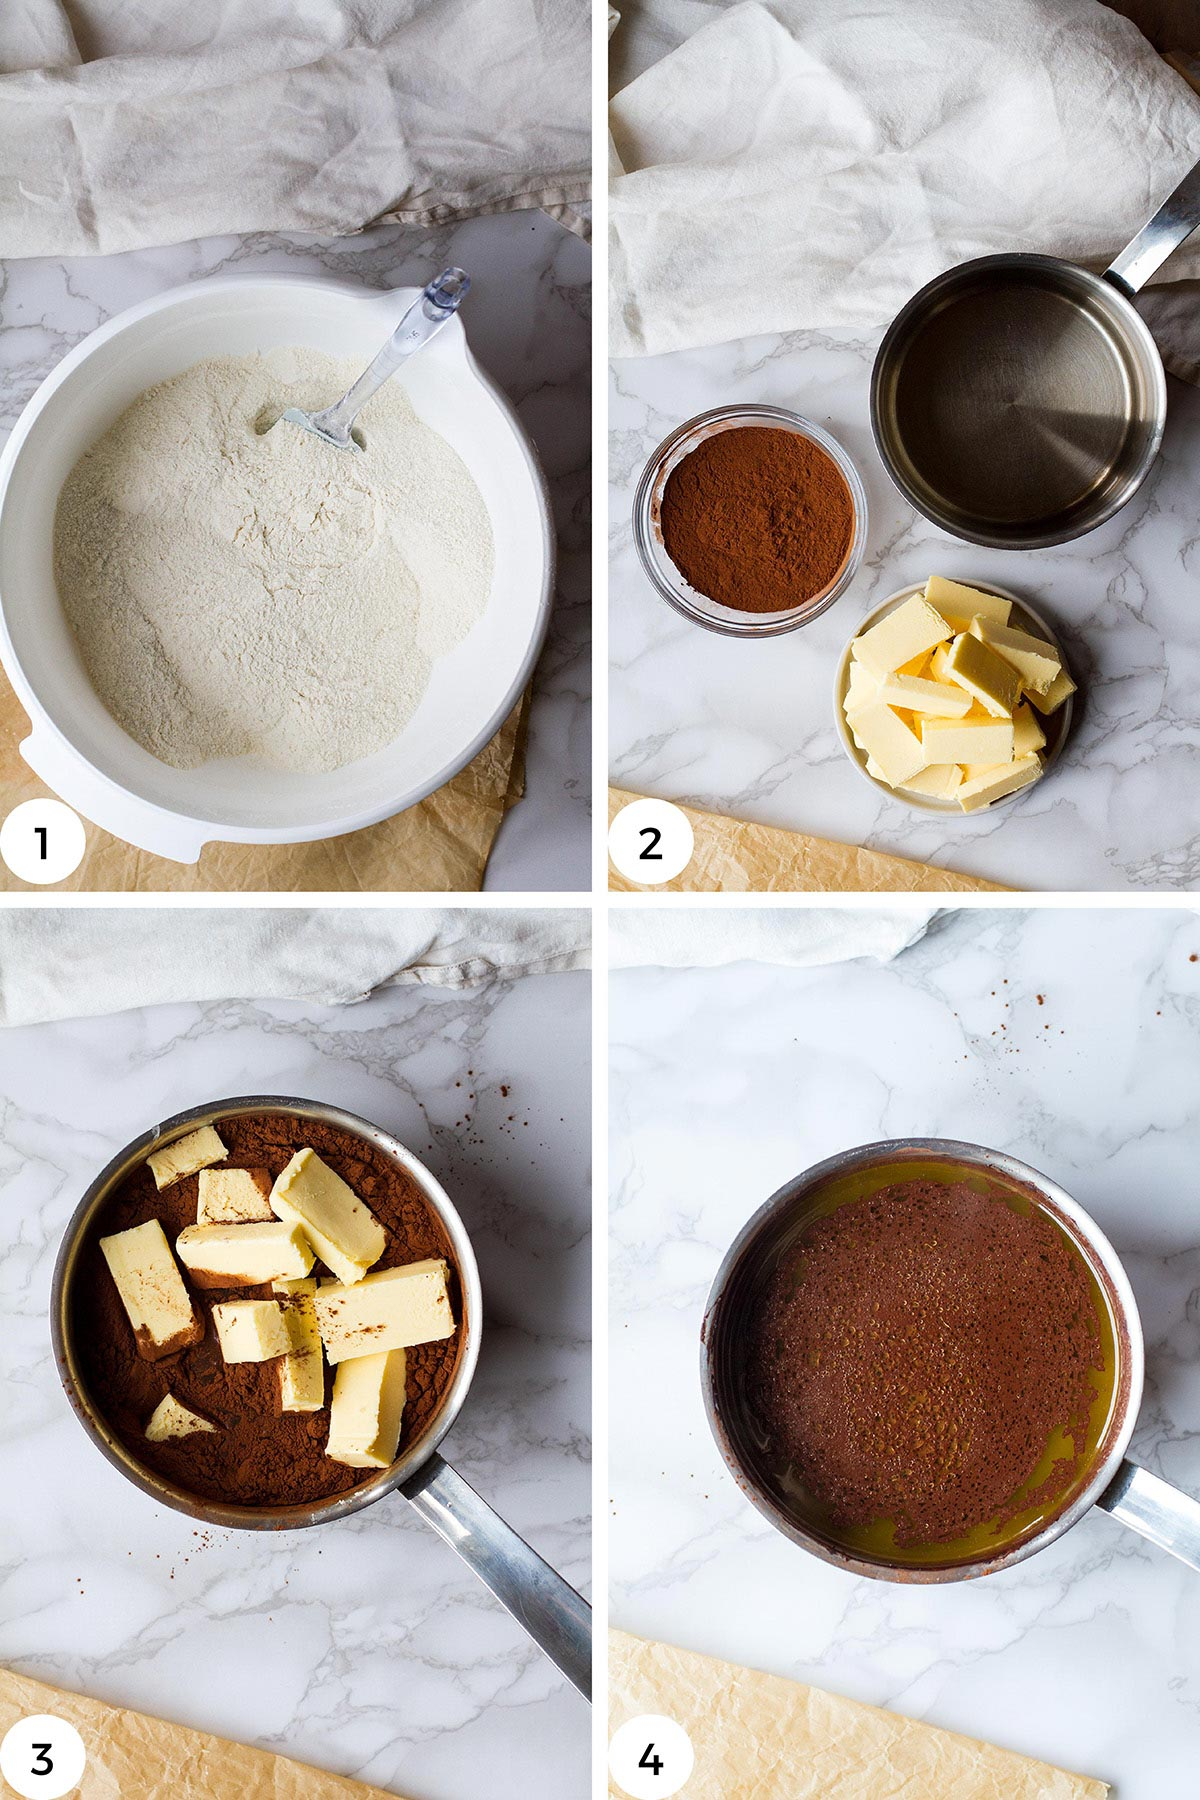 Steps to make chocolate butter mixture.